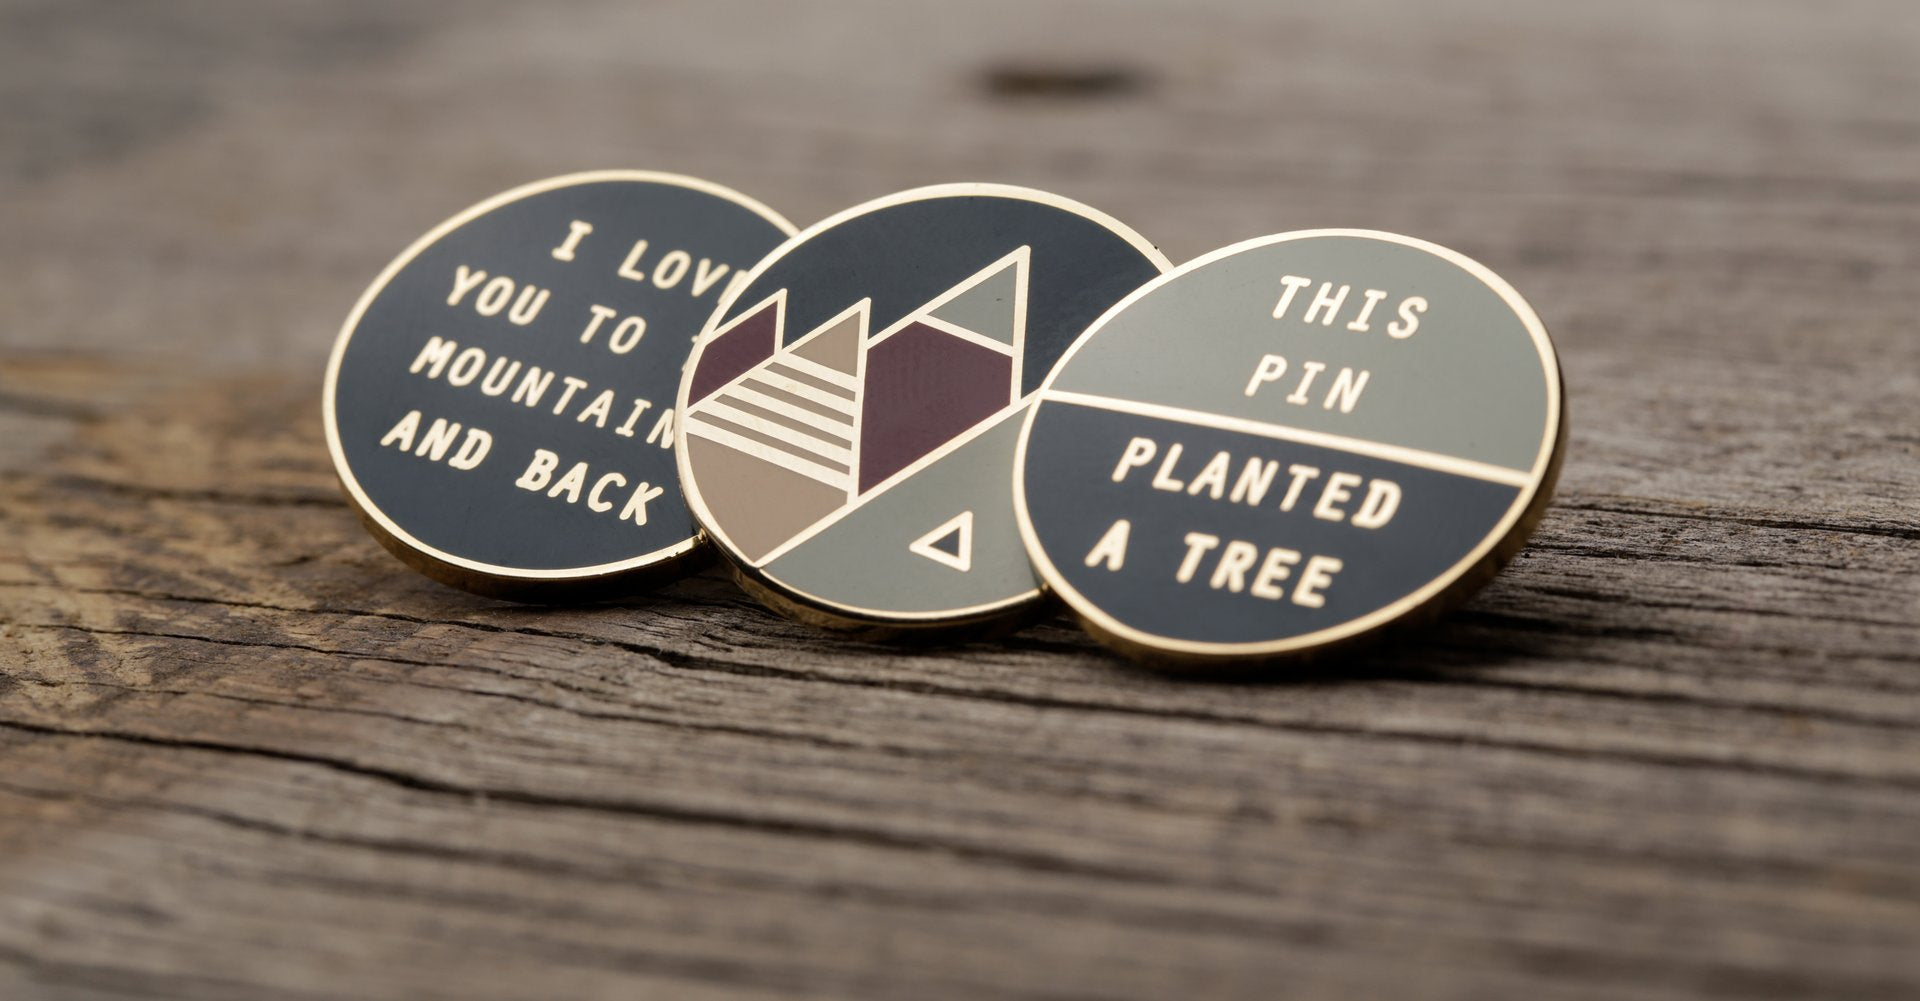 outdoor adventure enamel pins